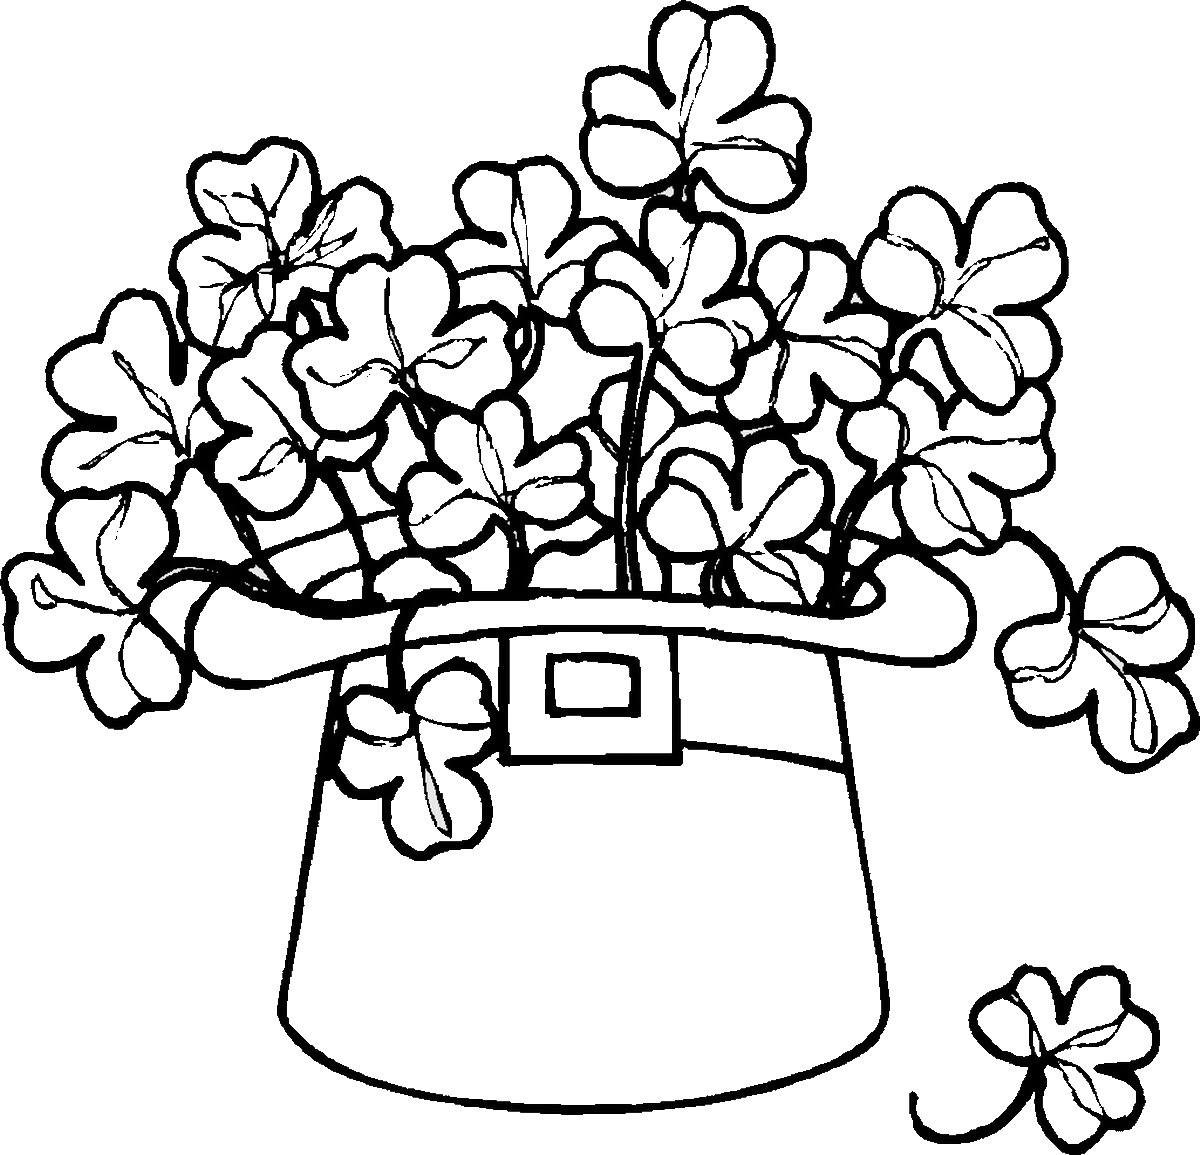 1200x1155 St Patricks Day Coloring Cool St Patrick Coloring Pages